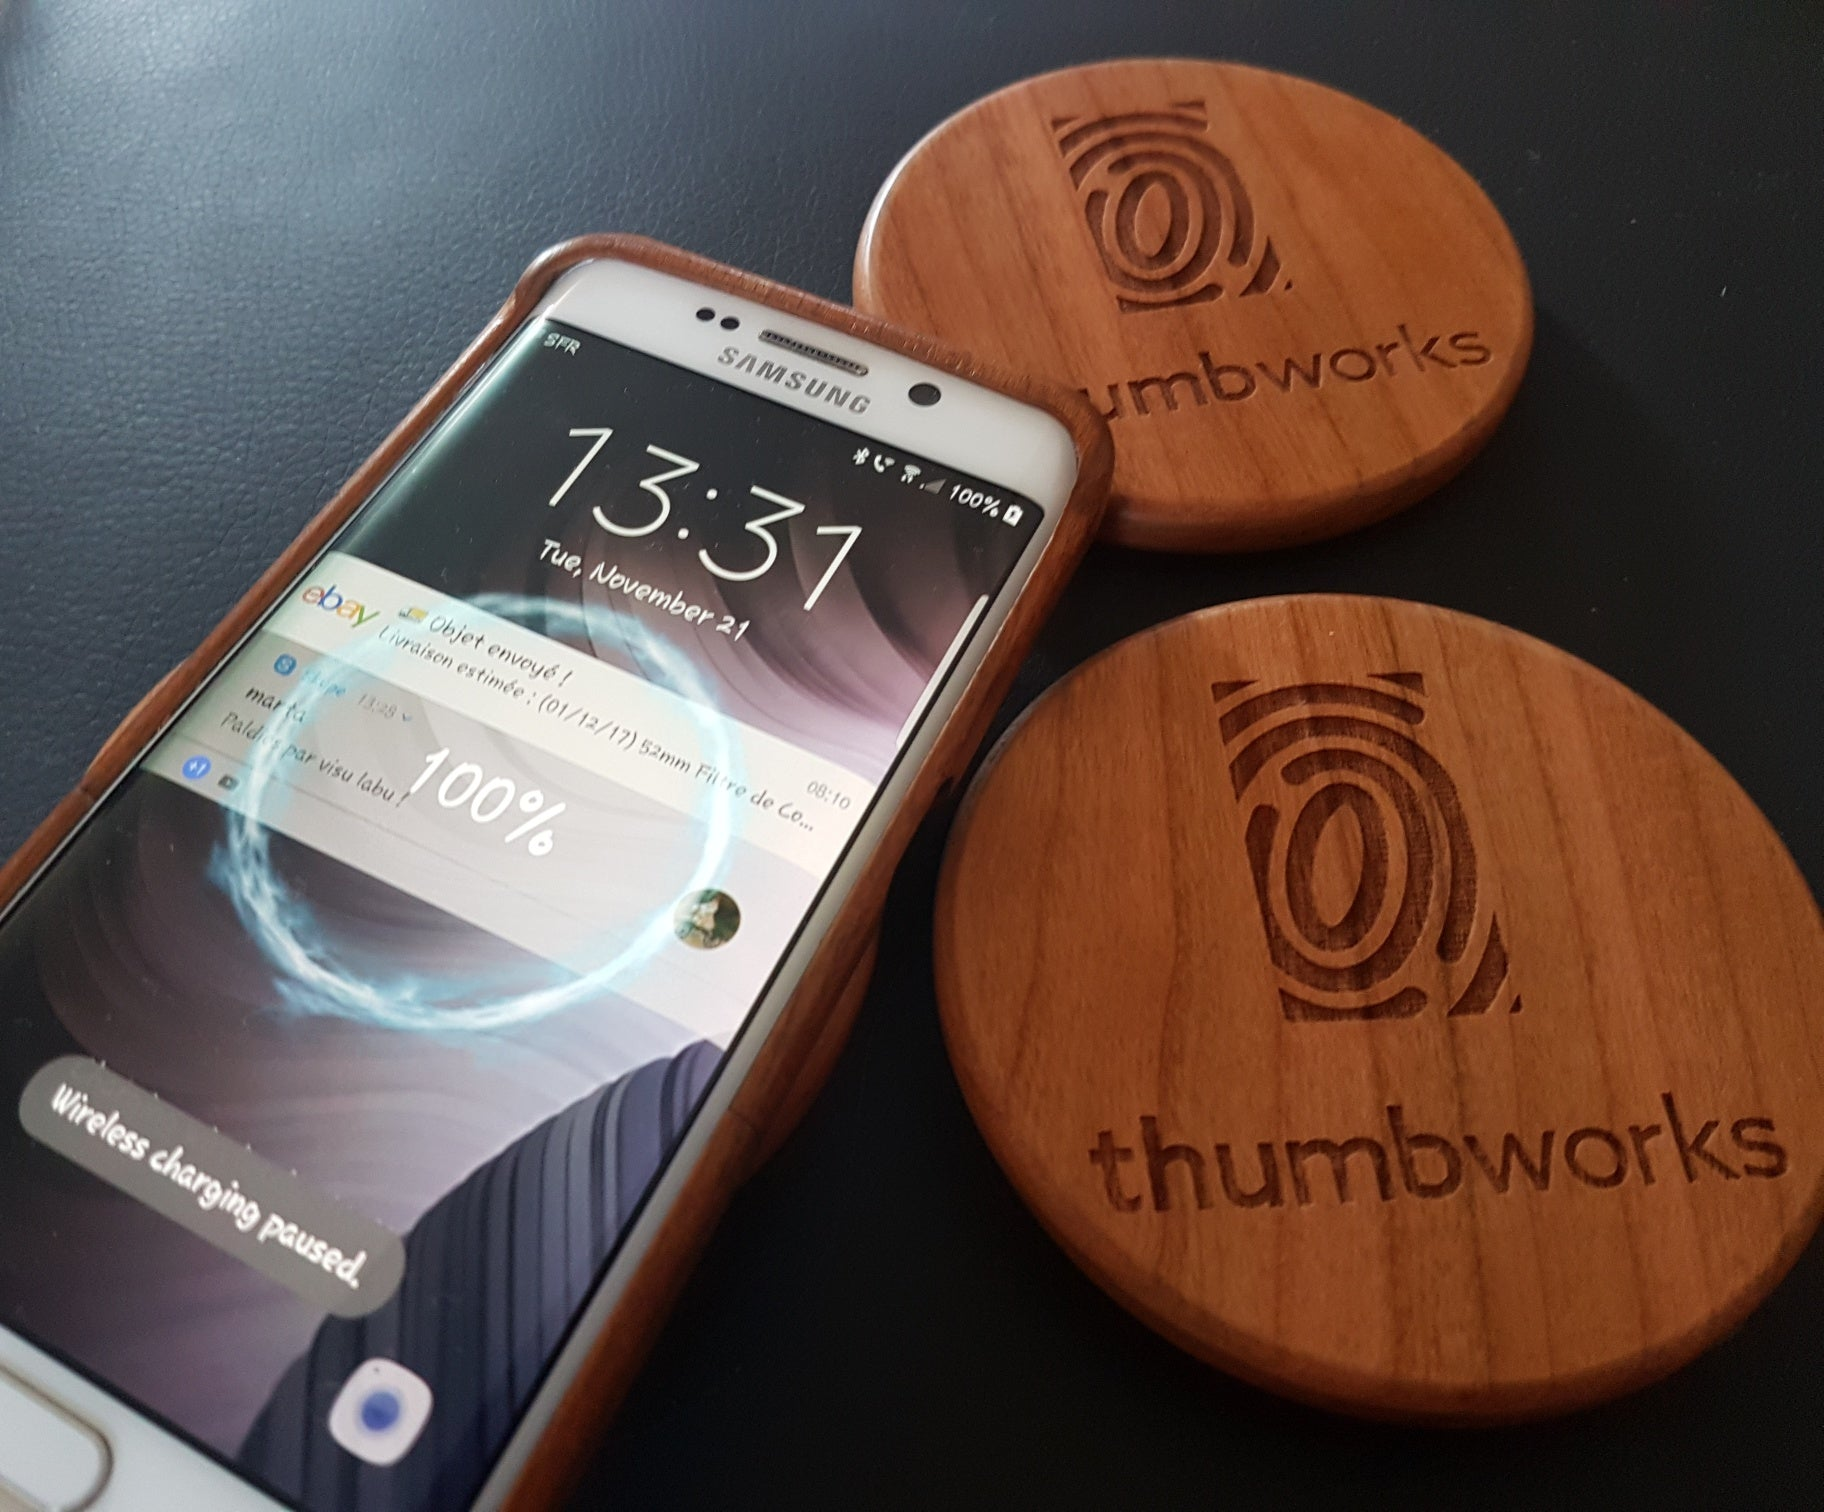 Wood QI Charger Wireless Charging Pad Custom Design FLAT EARTH Engraved Cherry Wood